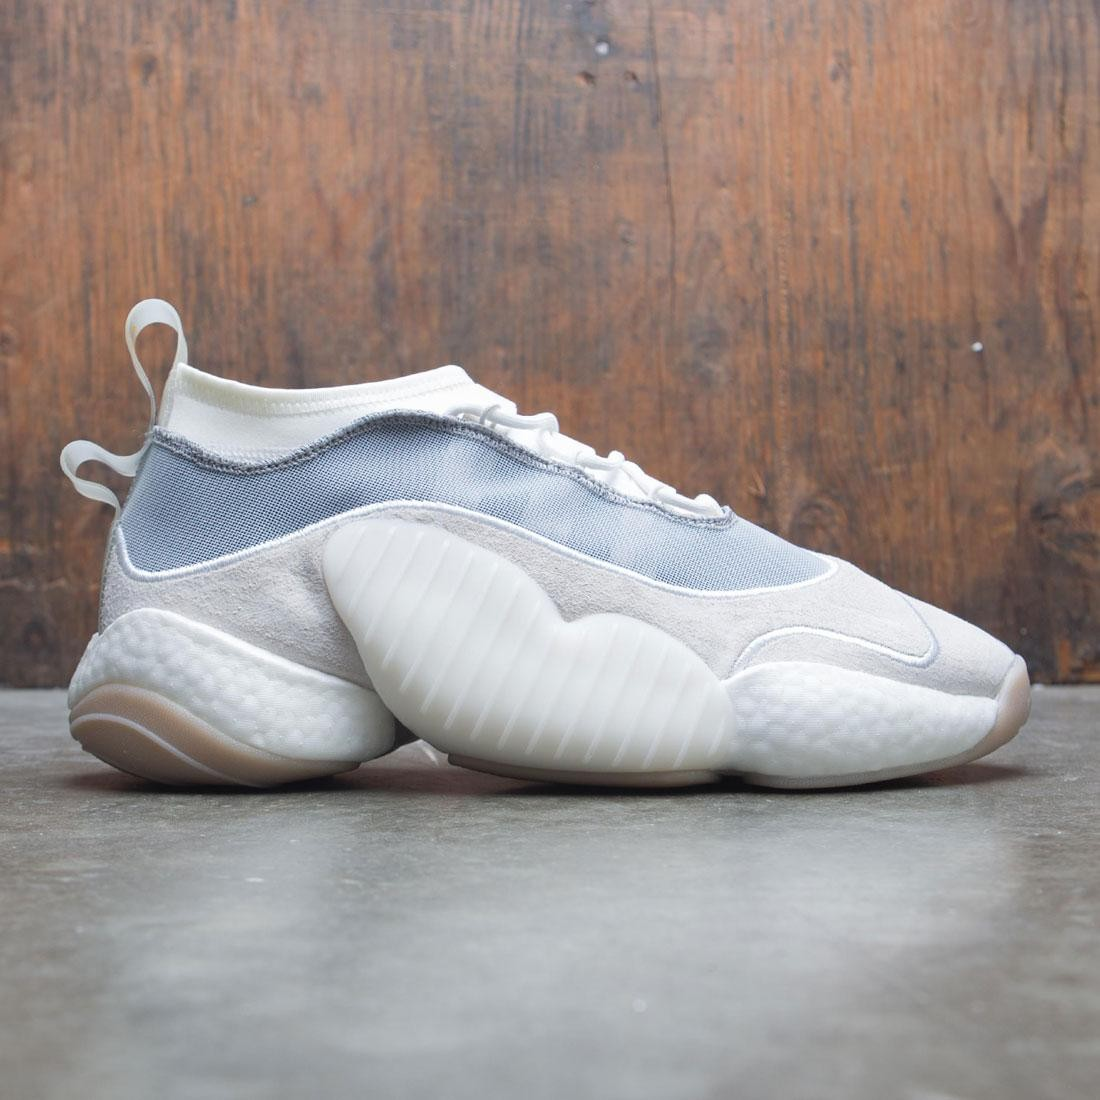 premium selection 267f7 0d547 Adidas x Bristol Studio Men Crazy BYW LVL II white cloud white collegiate  navy